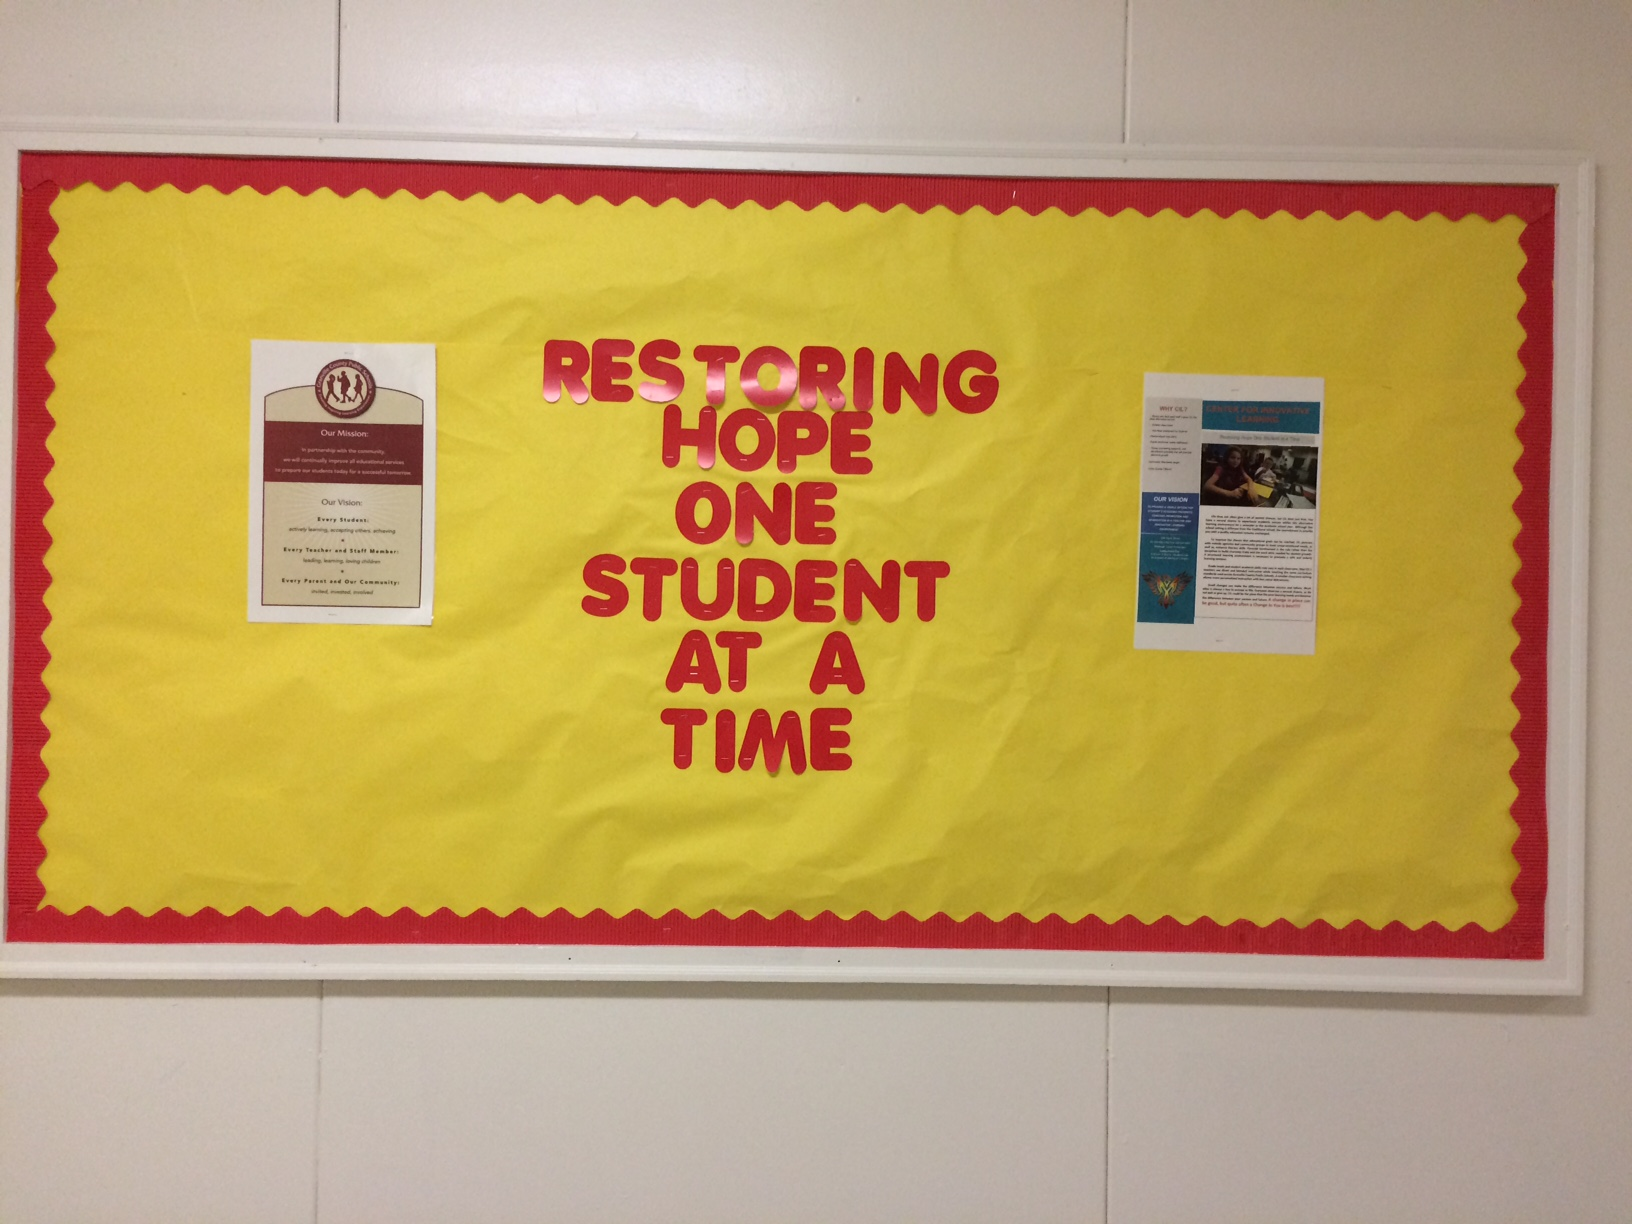 Restoring Hope One Student at a Time